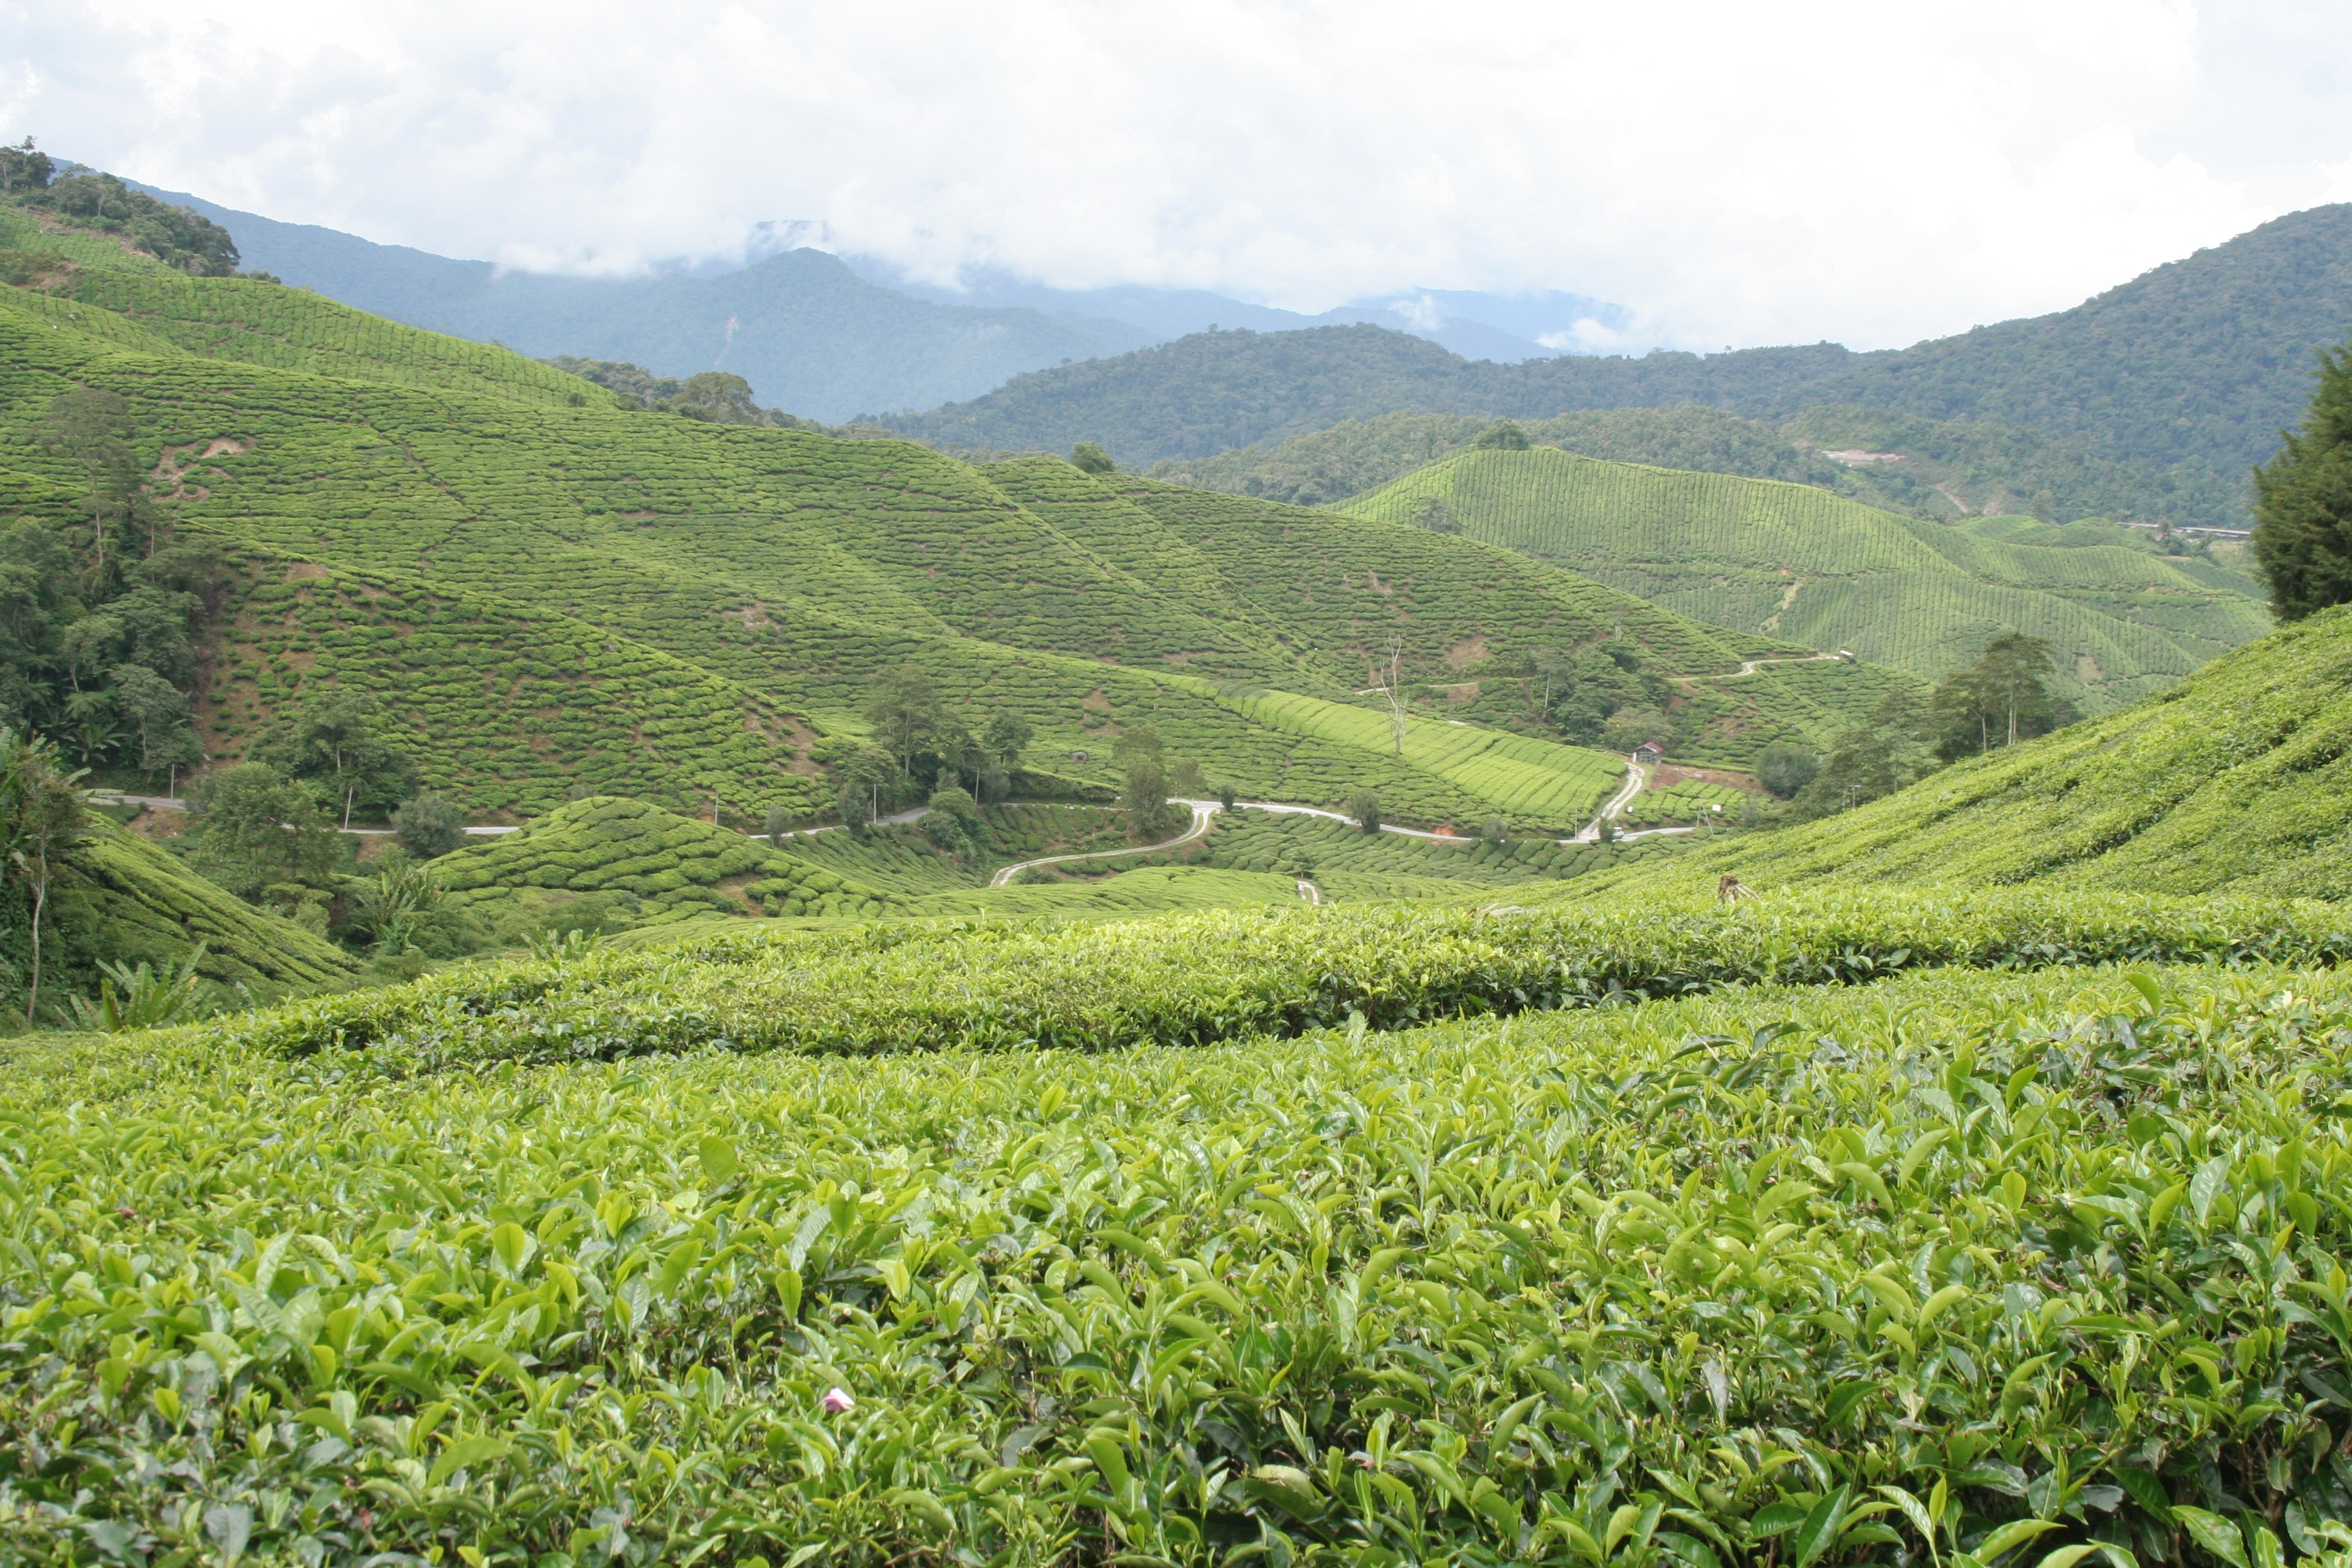 Boh Tea Plantation Fields in Cameron Highlands, Malaysia